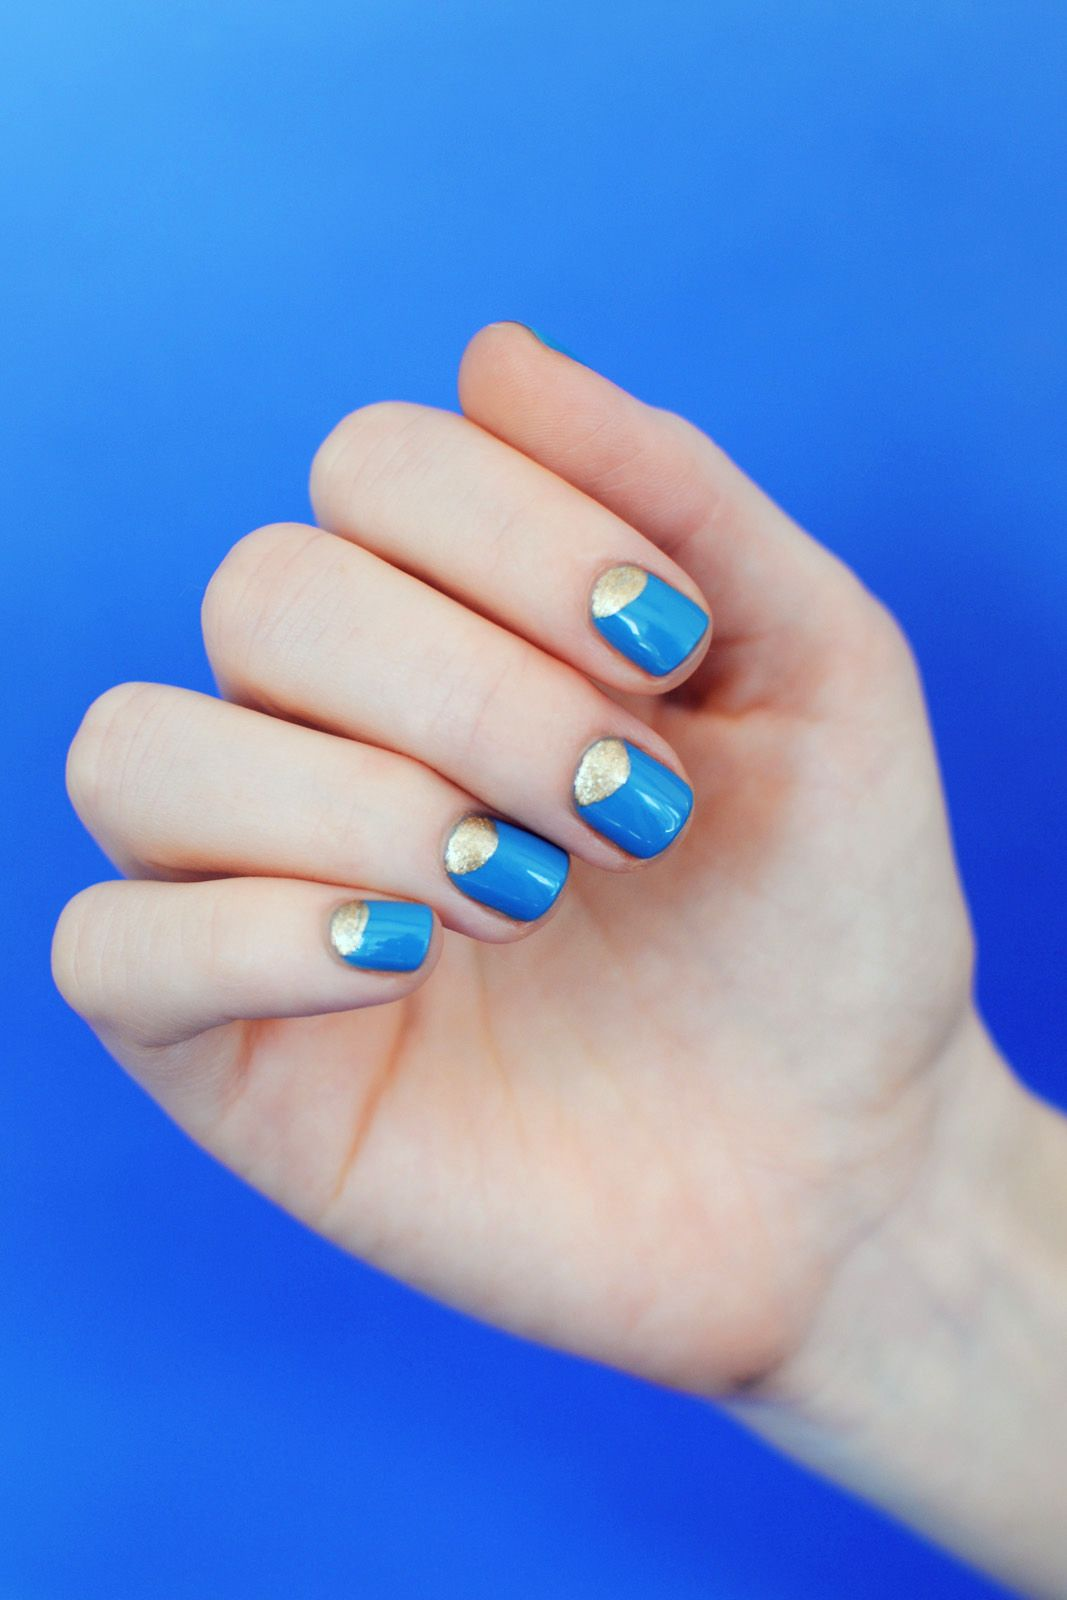 Upgrade Your Summer Nail Wardrobe With This Cool Kit Refinery29 Http Www Refinery29 Com Summer Nail Kit Slide9 P Gold Nail Designs Cute Nails Simple Nails